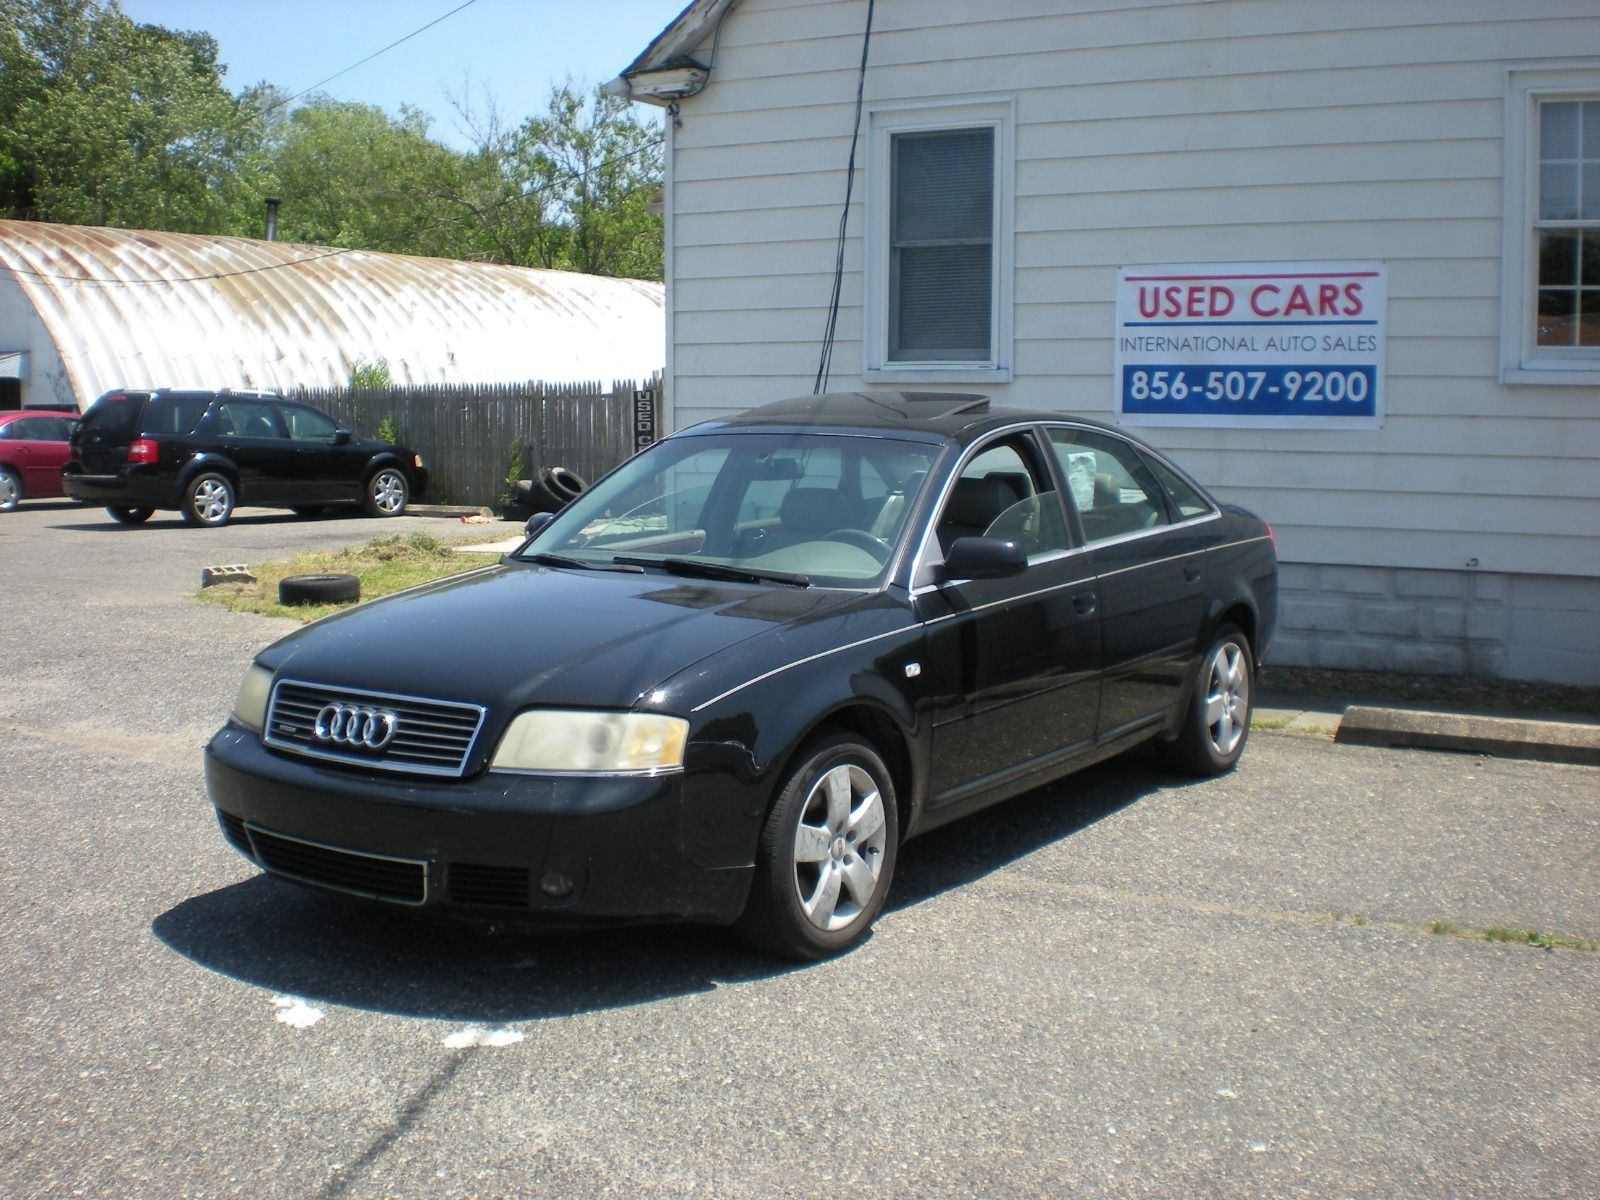 Car Brand Auctioned Audi A6 2002 Car Model Audi A 6 Check More At Http Auctioncars Online Product Car Brand Auctionedaudi A6 2002 Car Model Audi Bmw Car Bmw